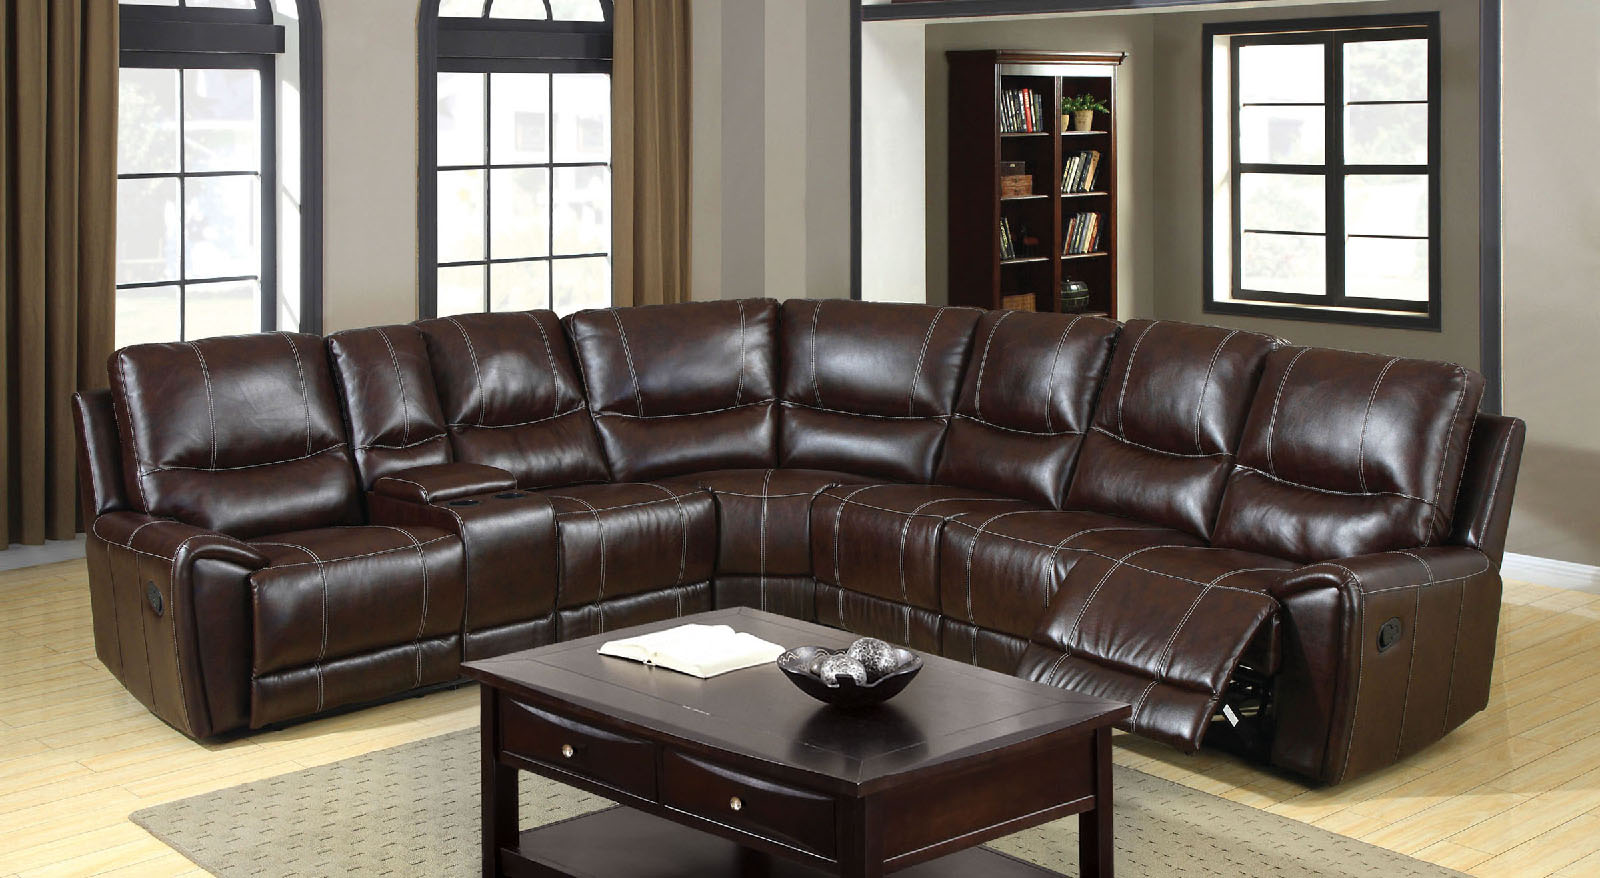 beach chairs with cup holders chair design love 6559 brown reclining console sectional sofa furniture of america los angeles, long beach, san ...